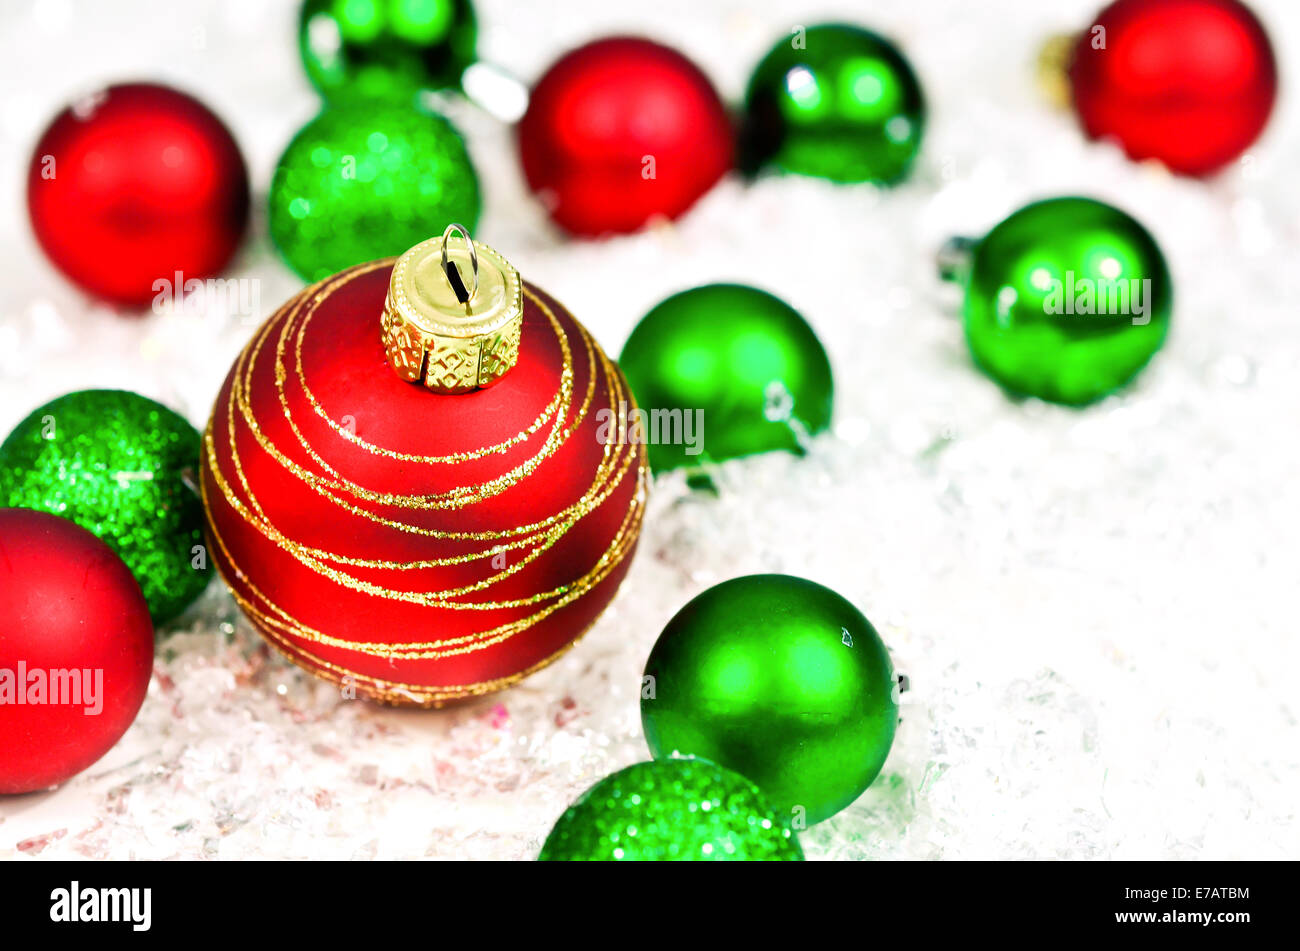 Red And Green Christmas Ornaments On Snow Background Stock Photo